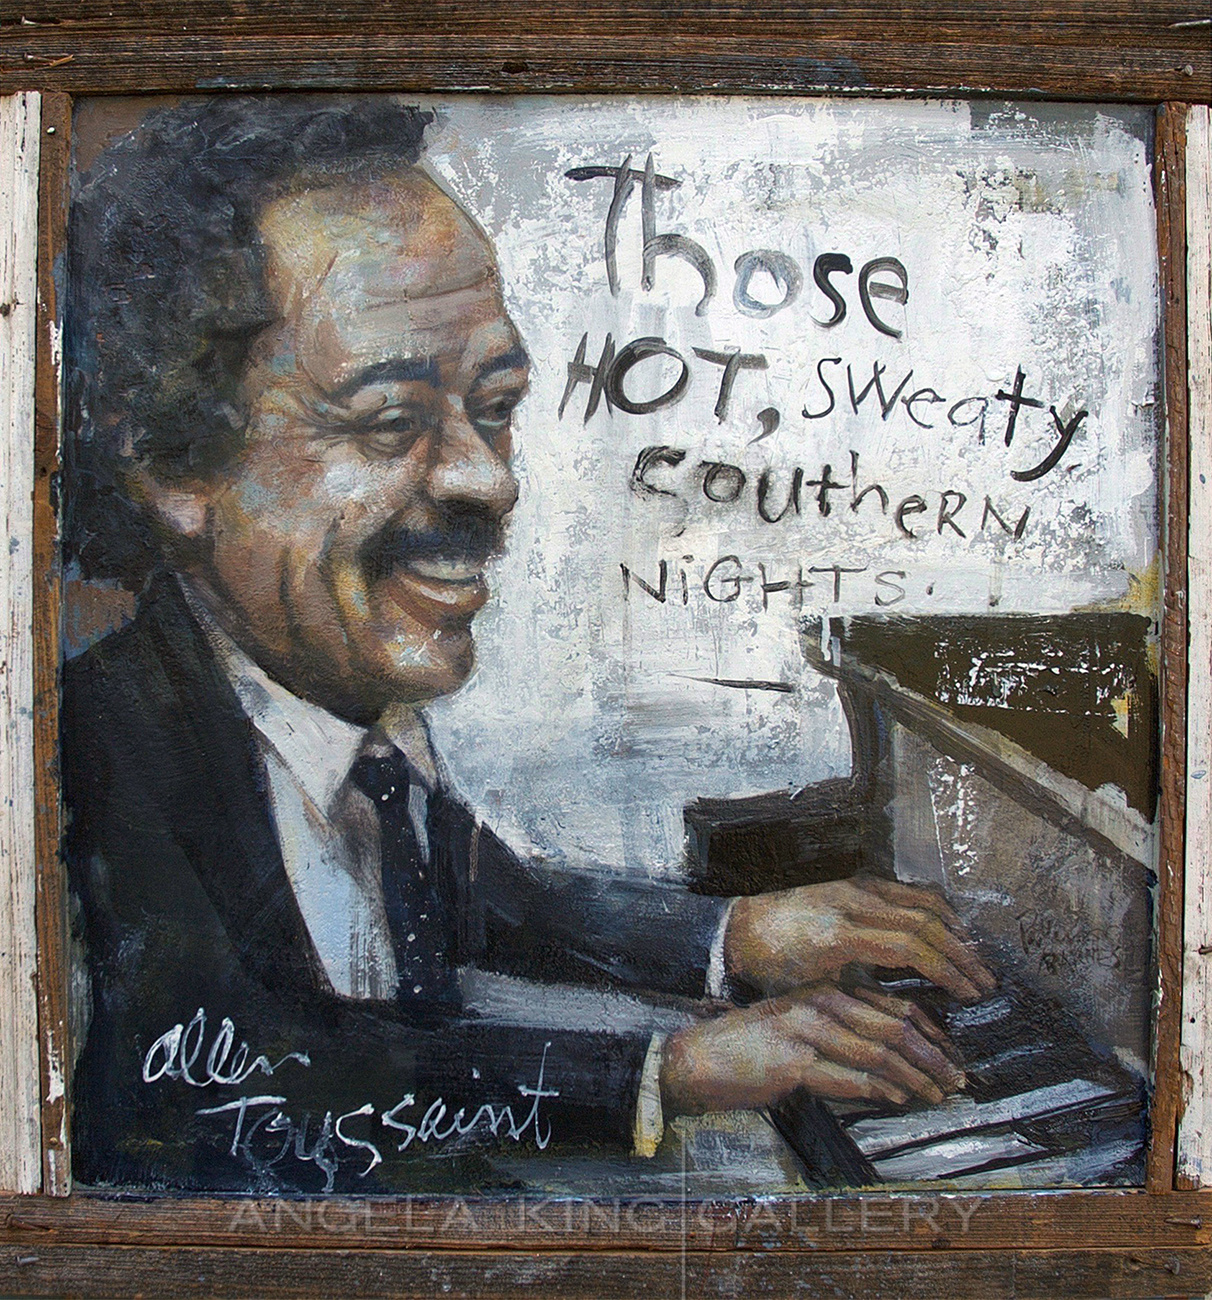 "Allen Toussaint ""Those Hot, Sweaty Southern Nights"""